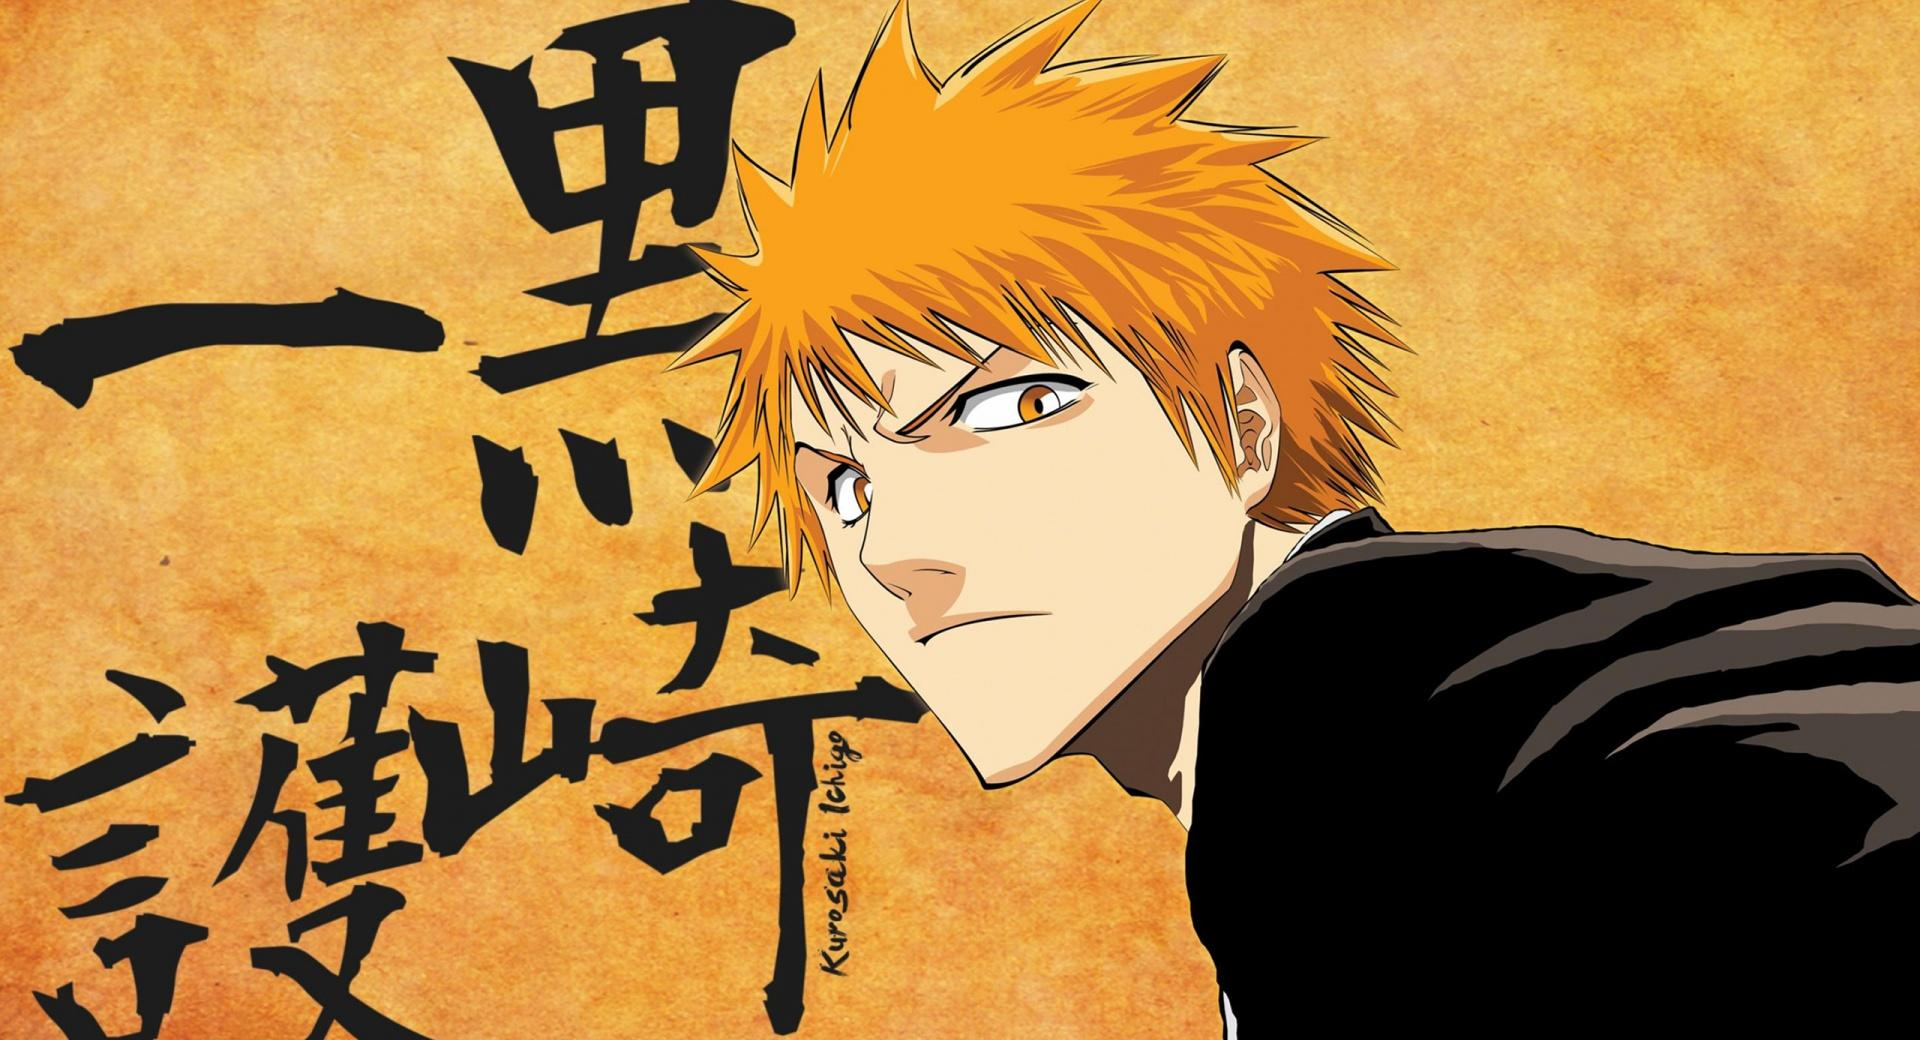 Bleach - Ichigo Kurosaki wallpapers HD quality